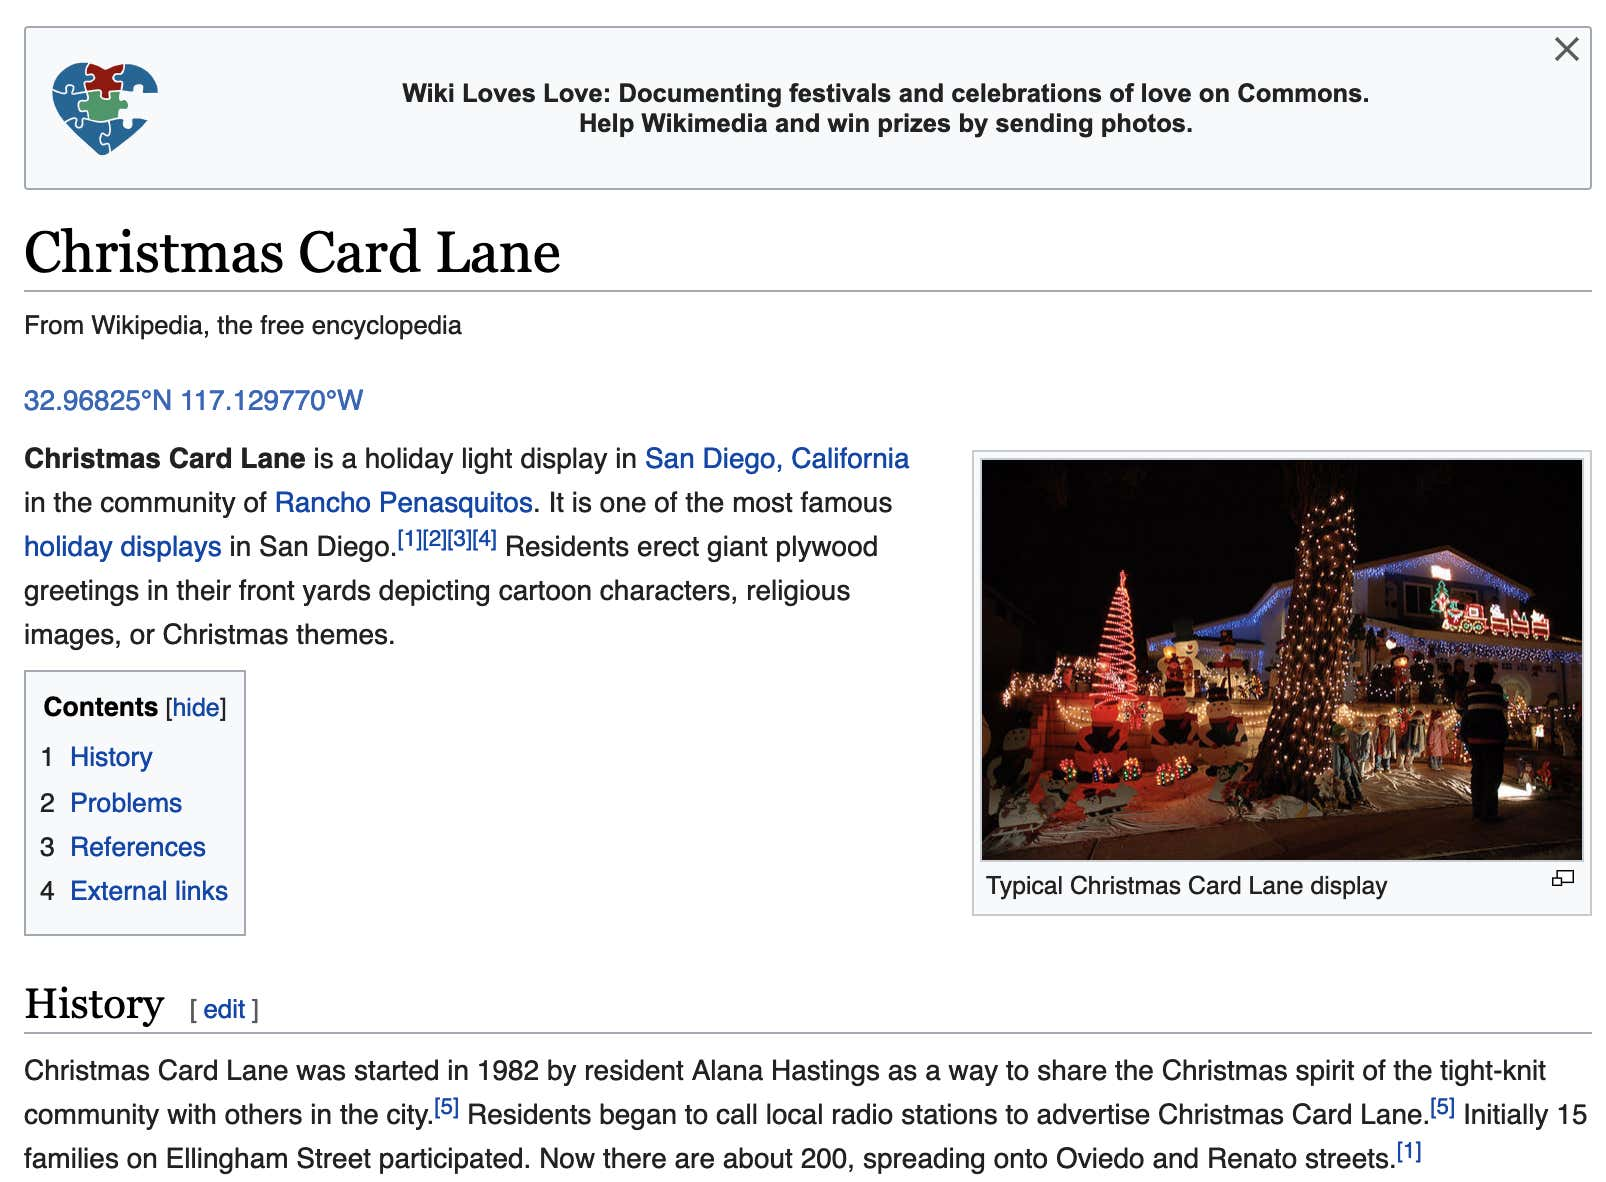 Christmas Card Lane 2019 Man Beats Death, Promptly Celebrates With Family Christmas Party